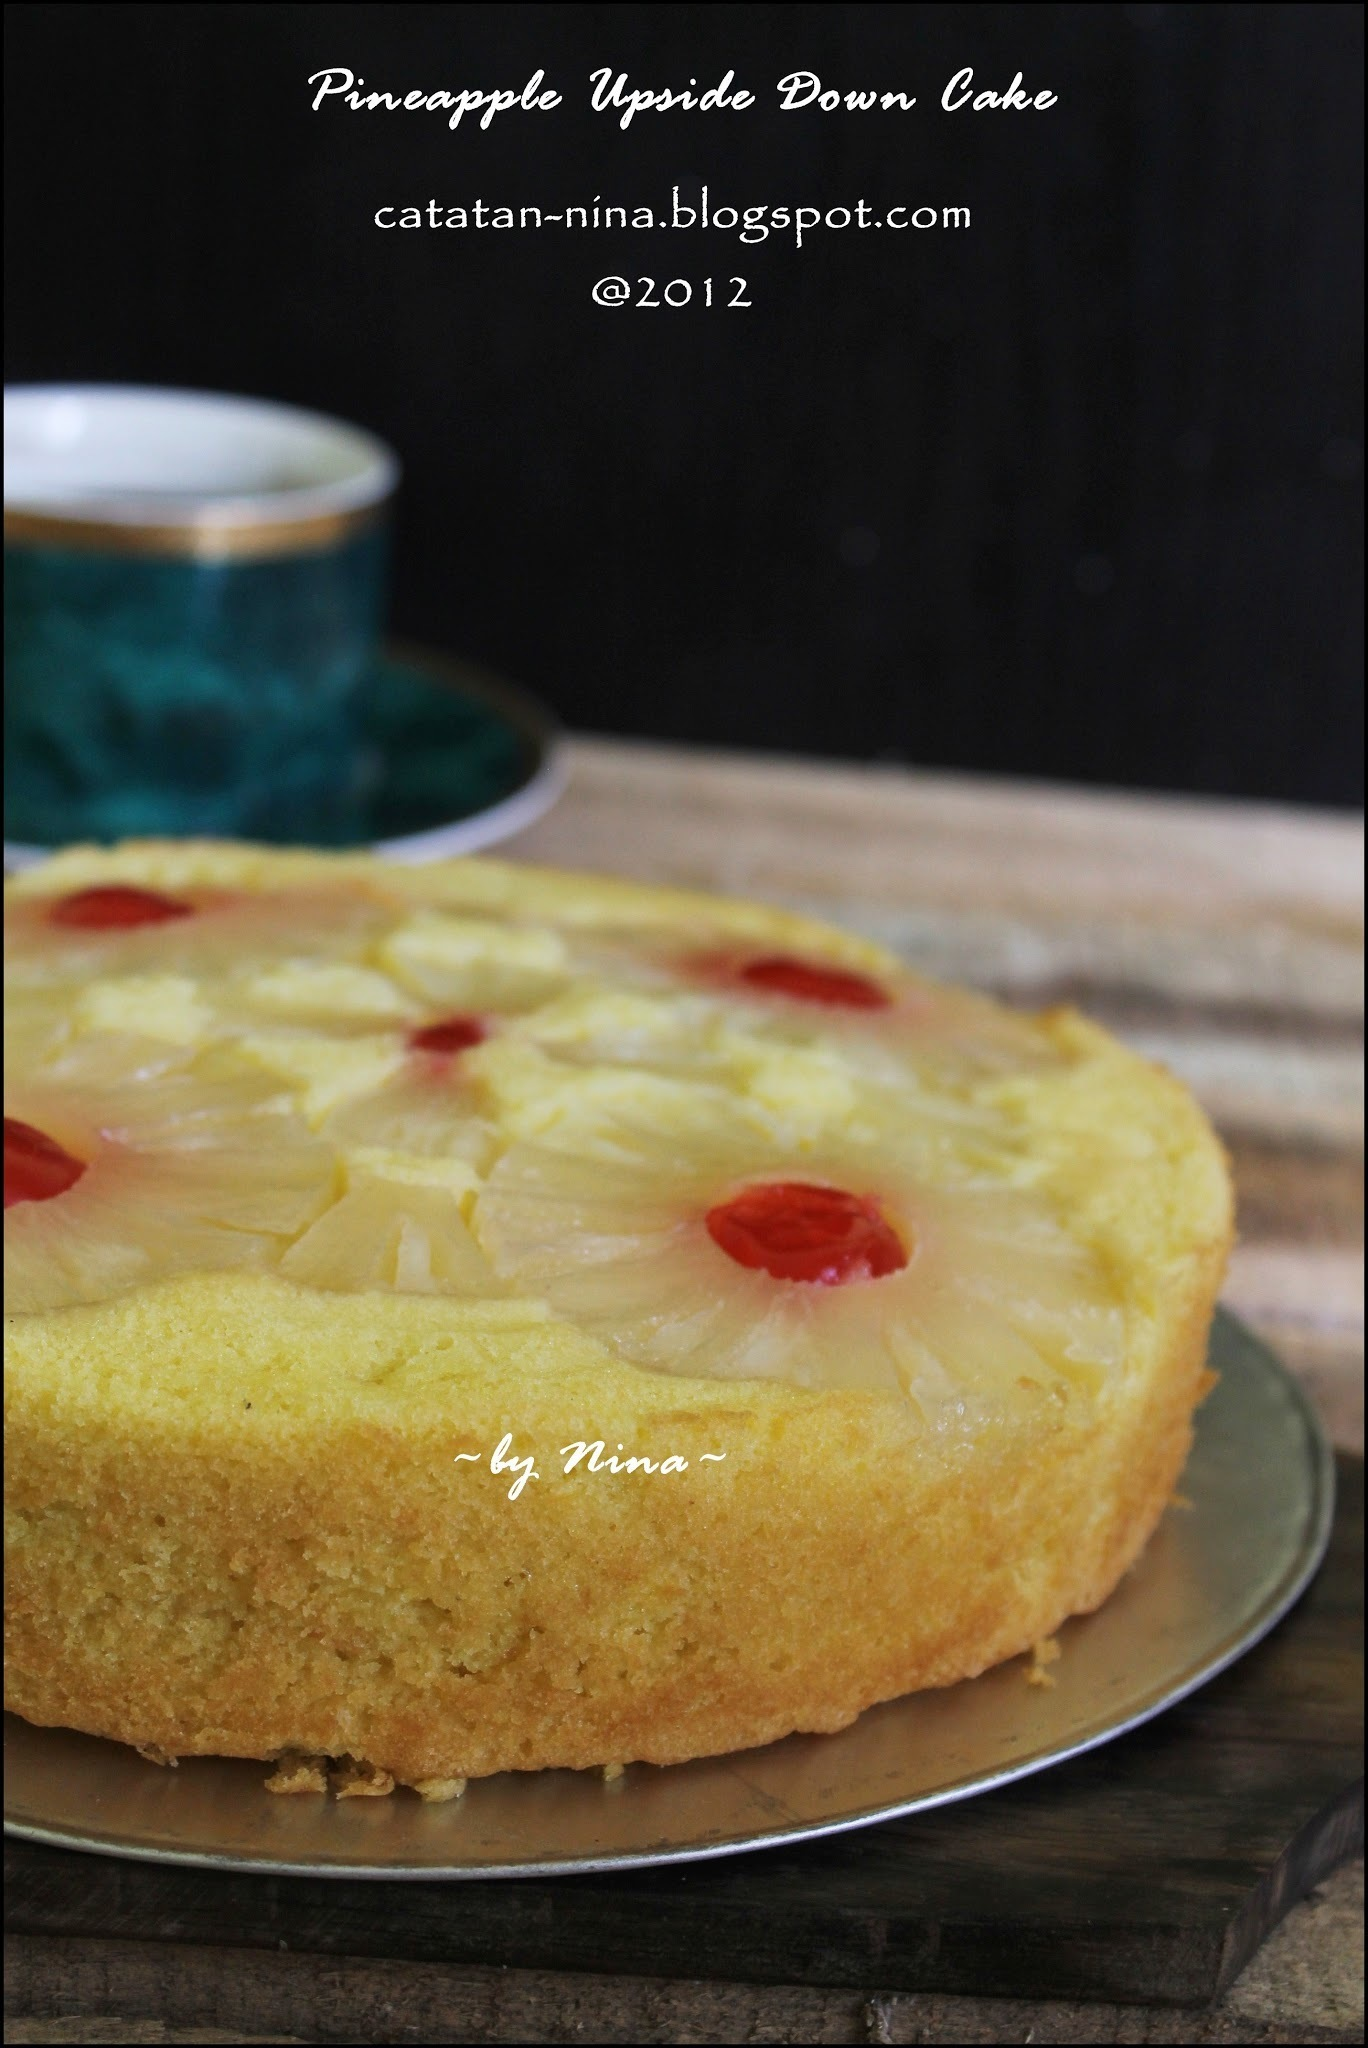 Finally....PINEAPPLE UPSIDE DOWN CAKE